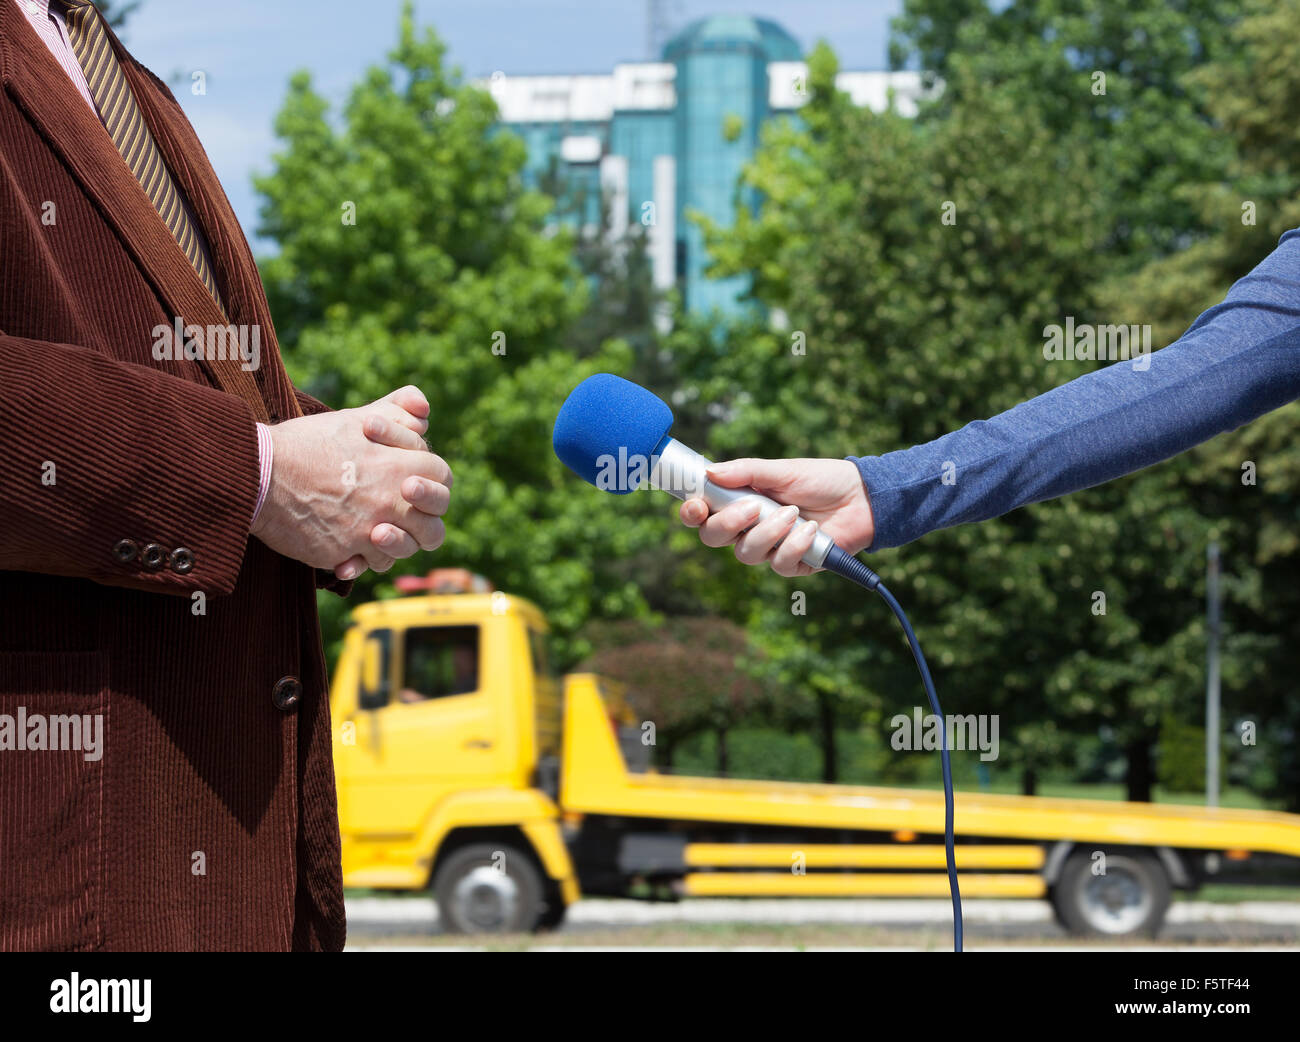 Journalist making interview with businessperson or politician - Stock Image